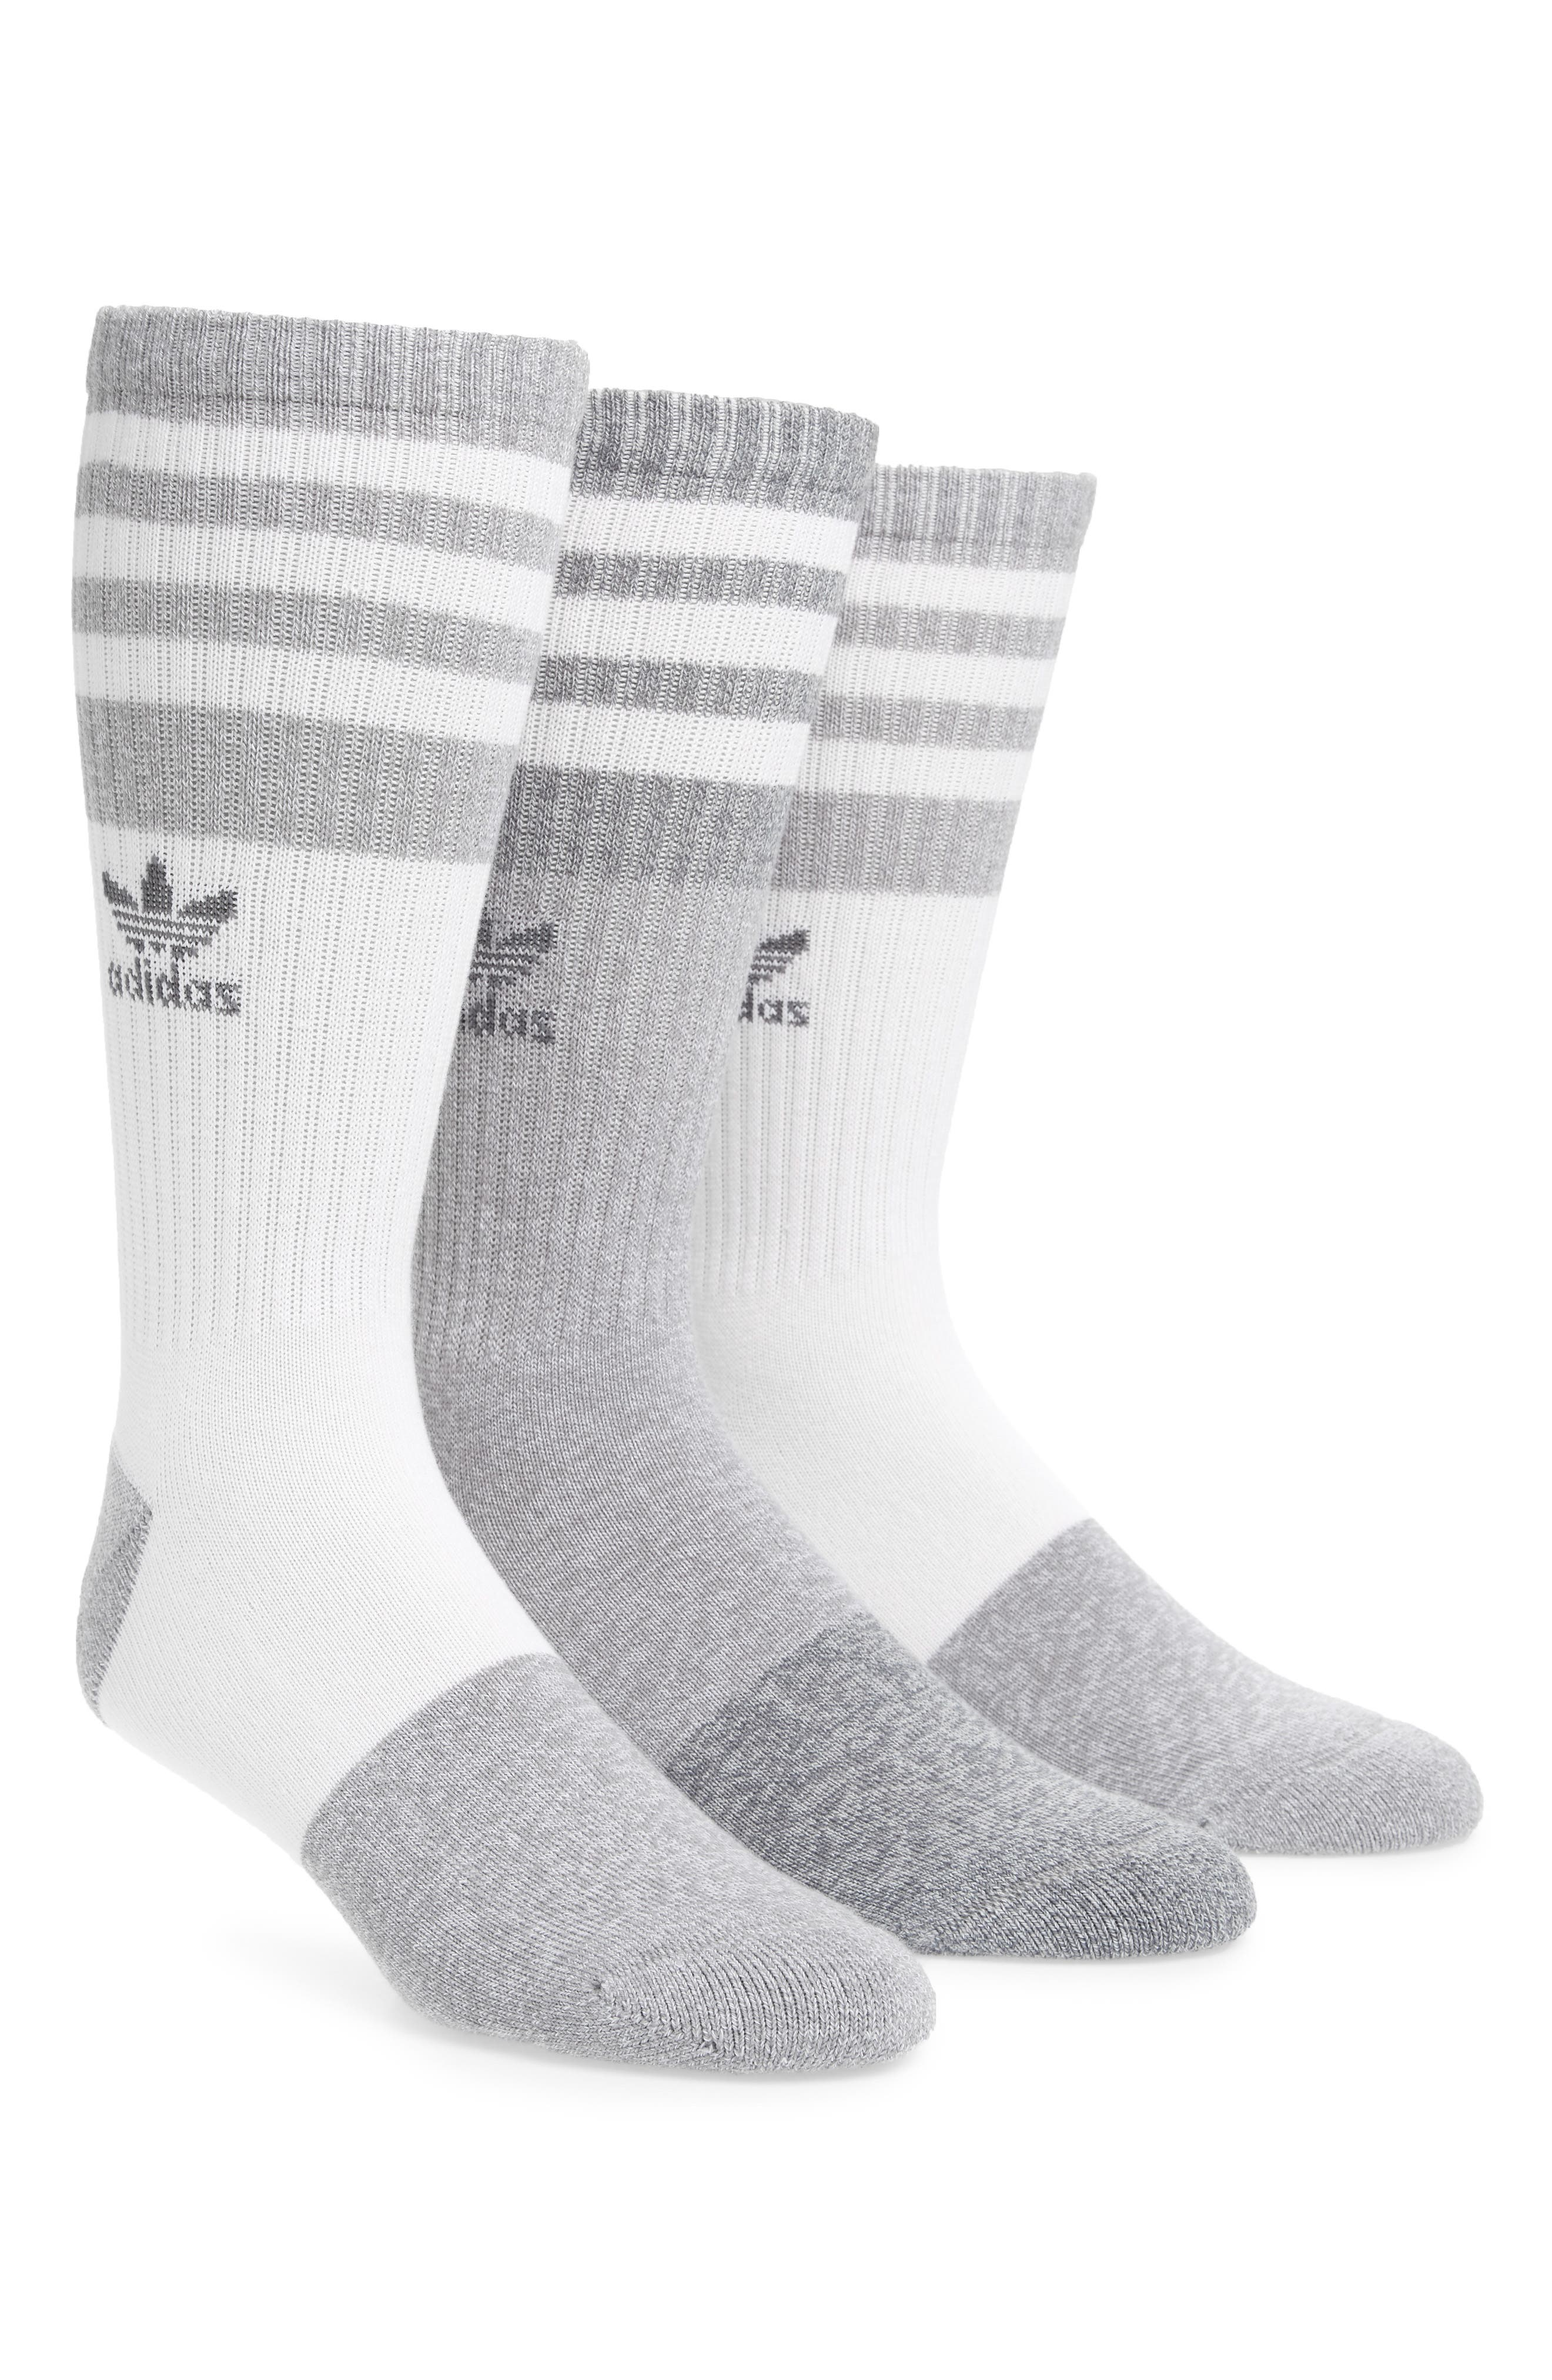 3-Pack Stripe Crew Socks,                         Main,                         color, White/ Clear Grey/ Onyx